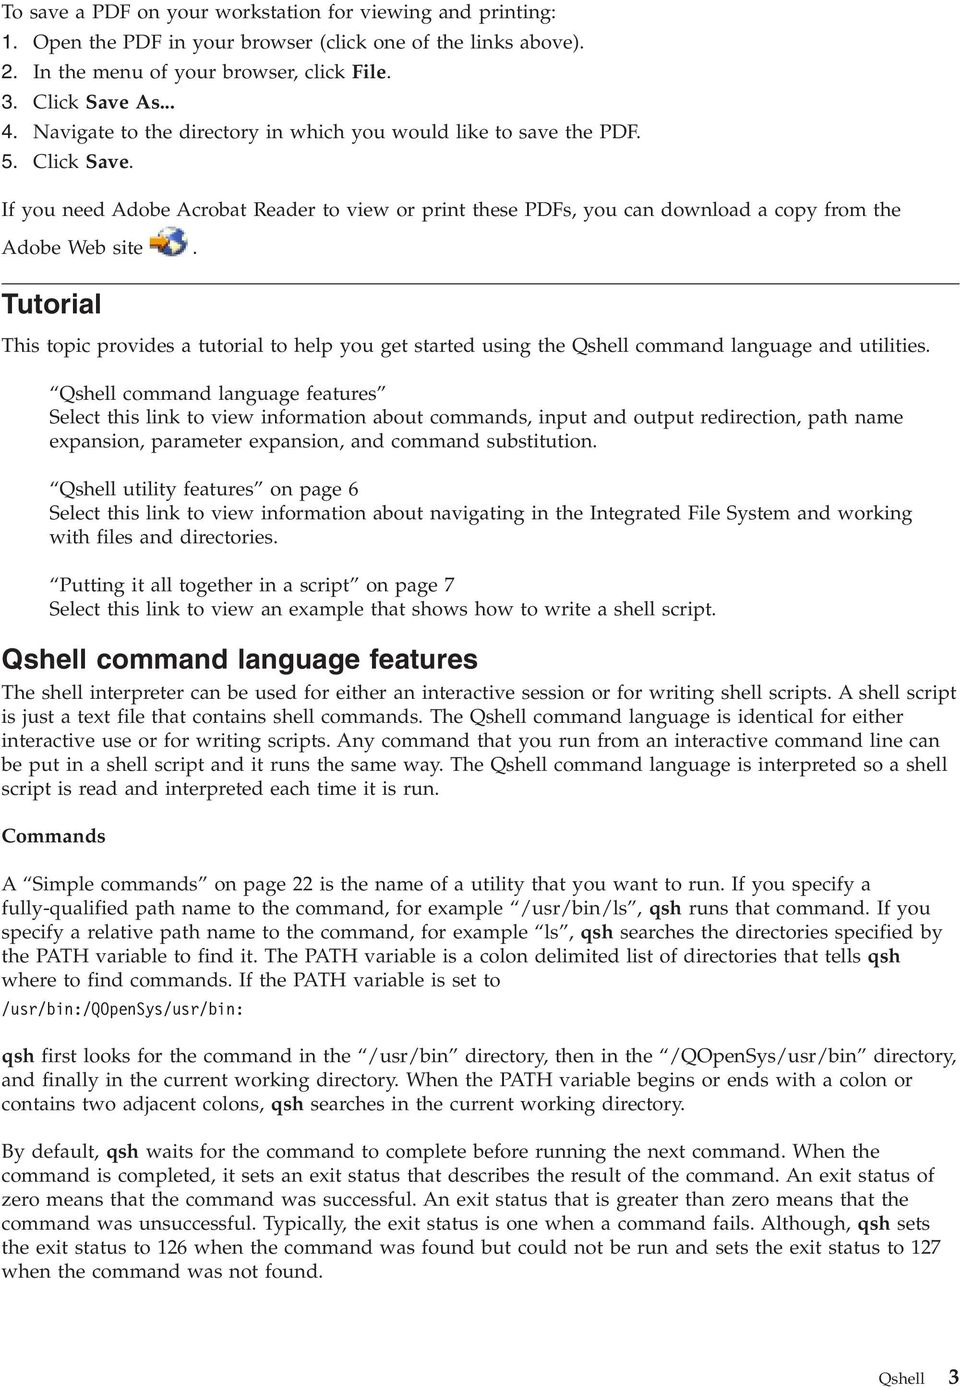 iseries Qshell Version 5 Release 4 - PDF